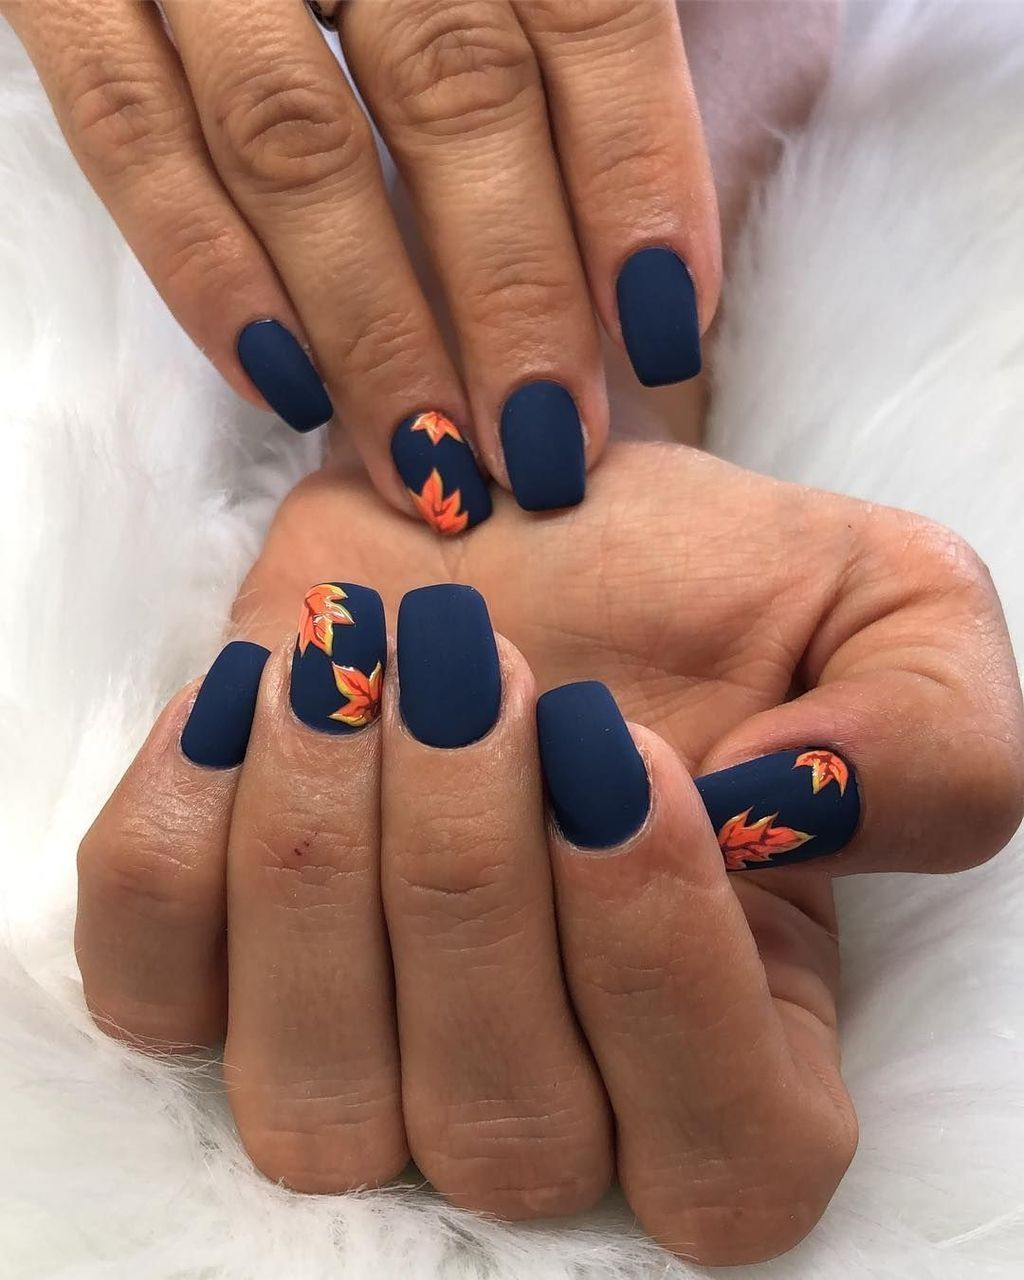 42 Outstanding Fall Nails Designs Ideas That Make You Want To Copy Gelove Nehty Design Nehtu Nehet